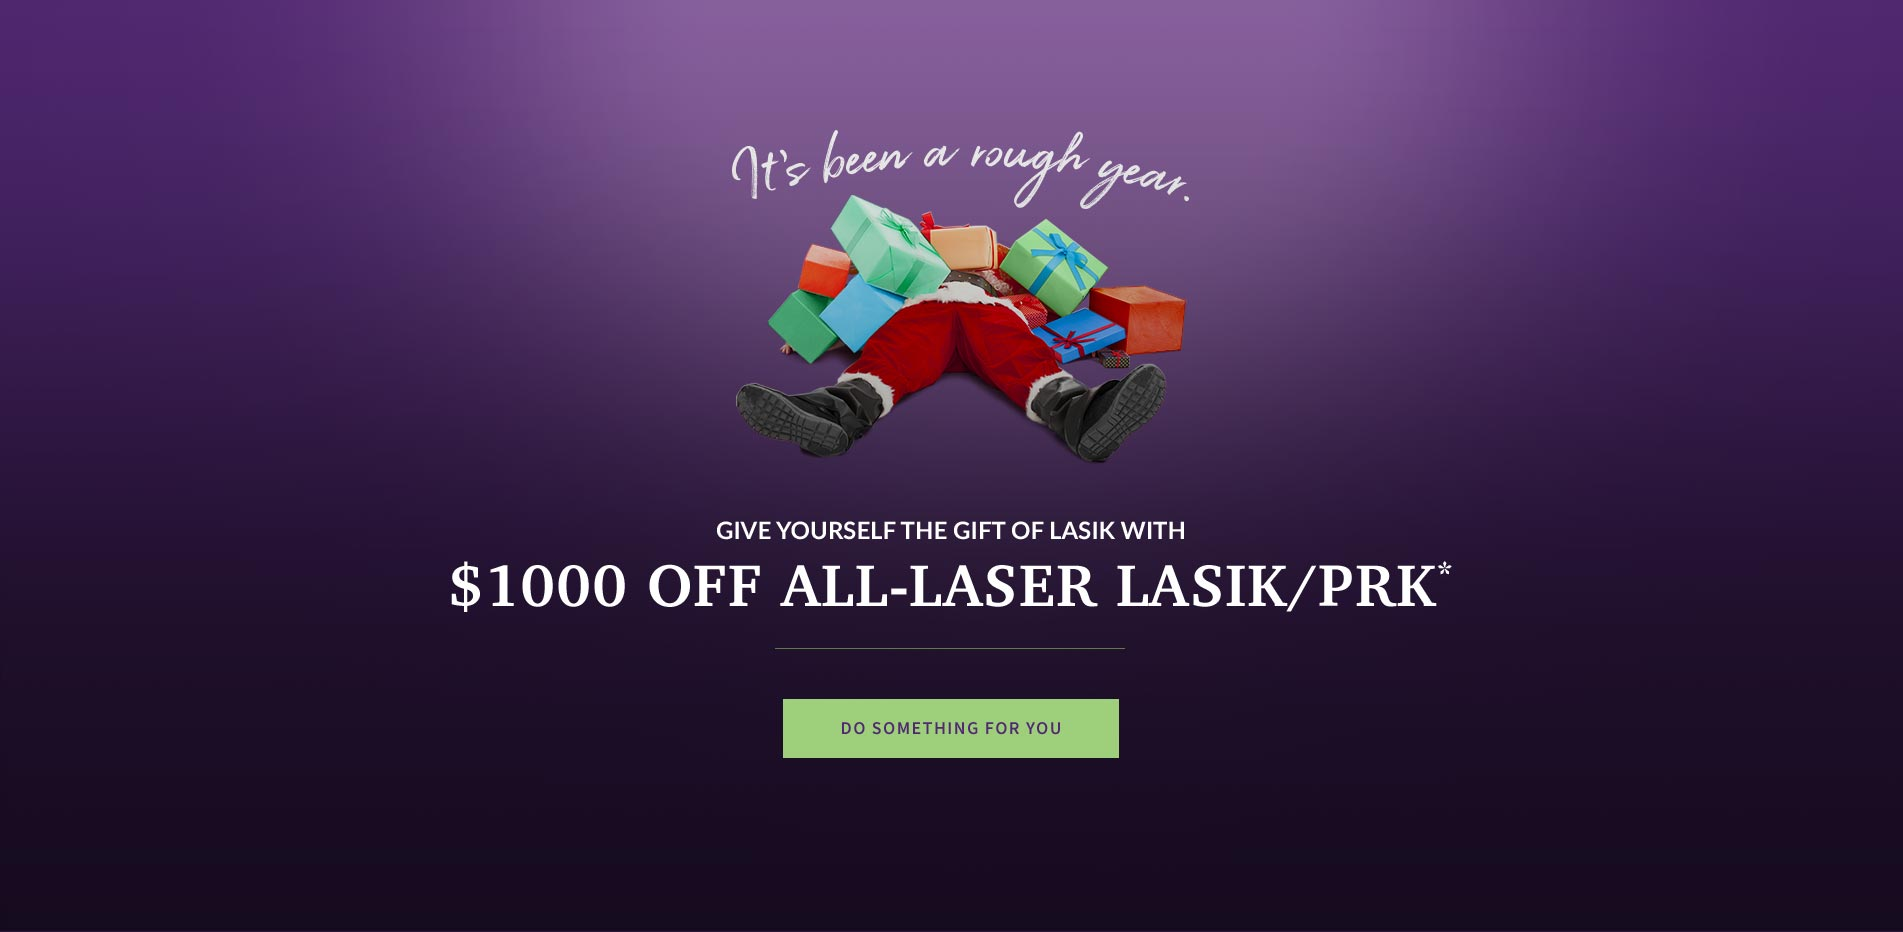 It's been a rough year. Give yourself the gift of LASIK with $1000 off all-laser LASIK/PRK*